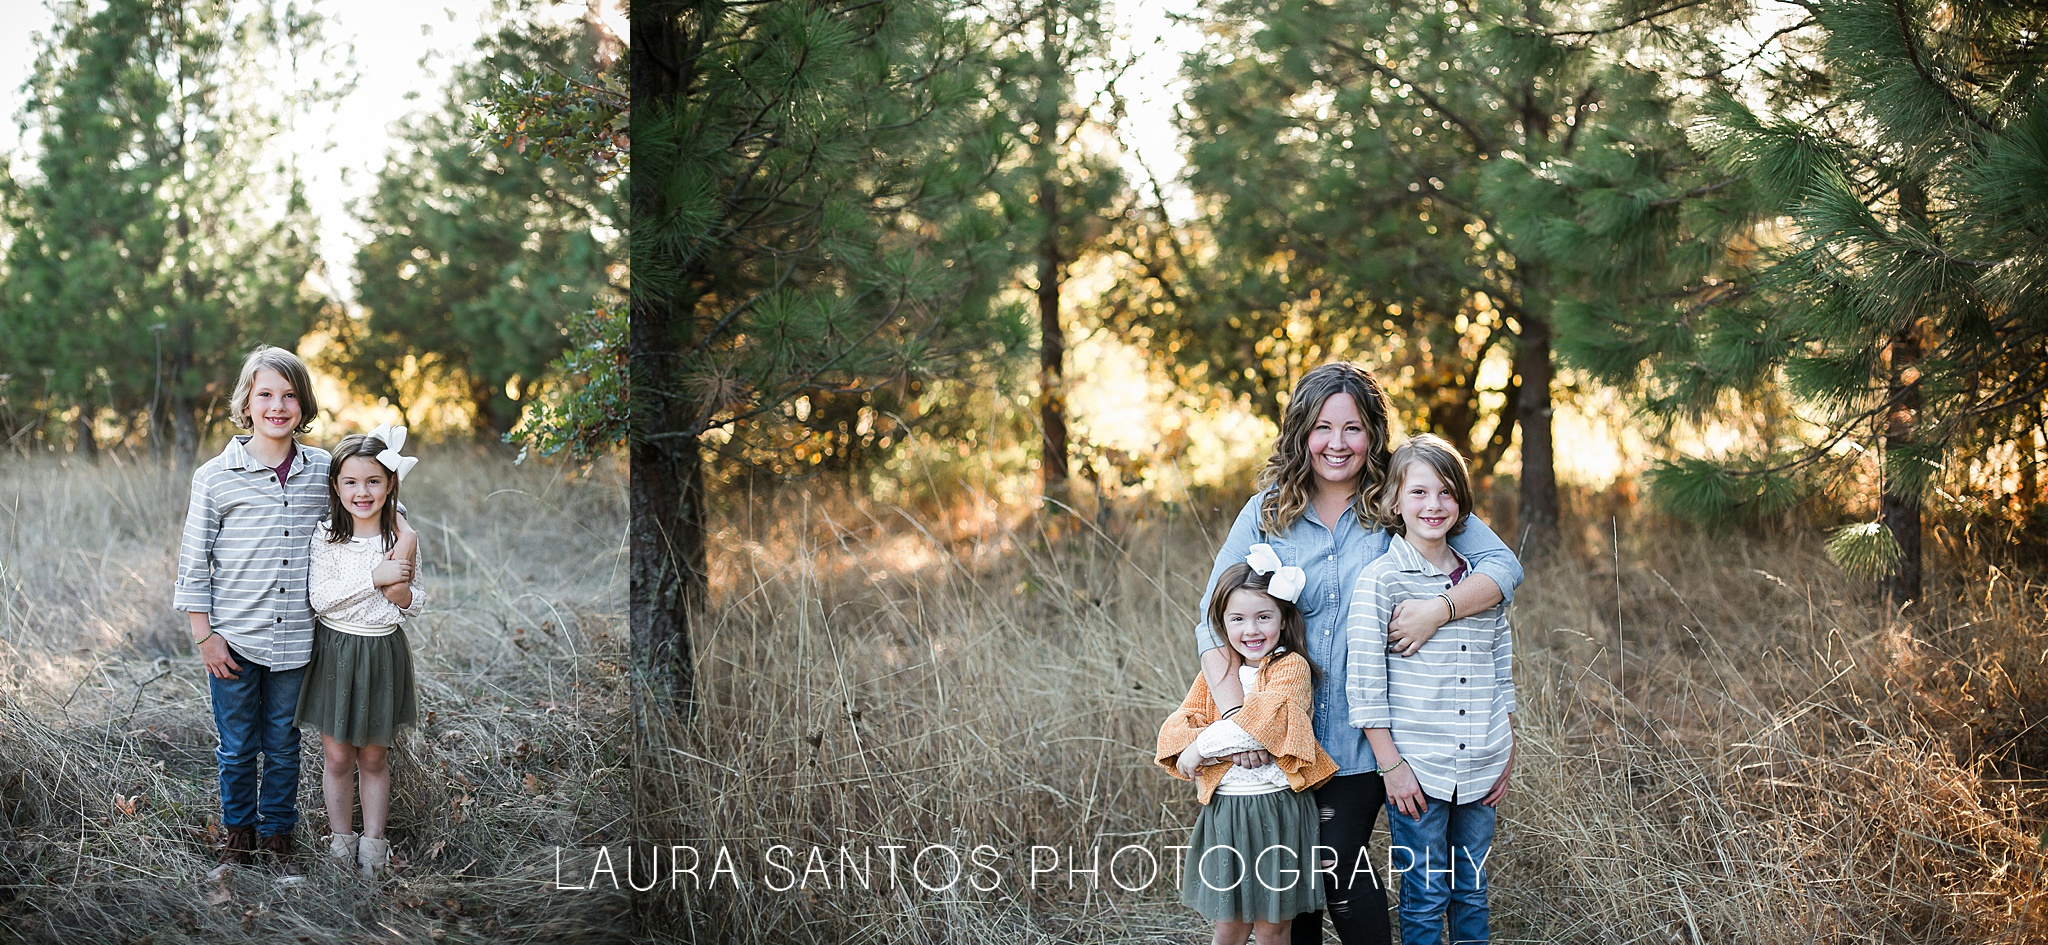 Laura Santos Photography Portland Oregon Family Photographer_0899.jpg